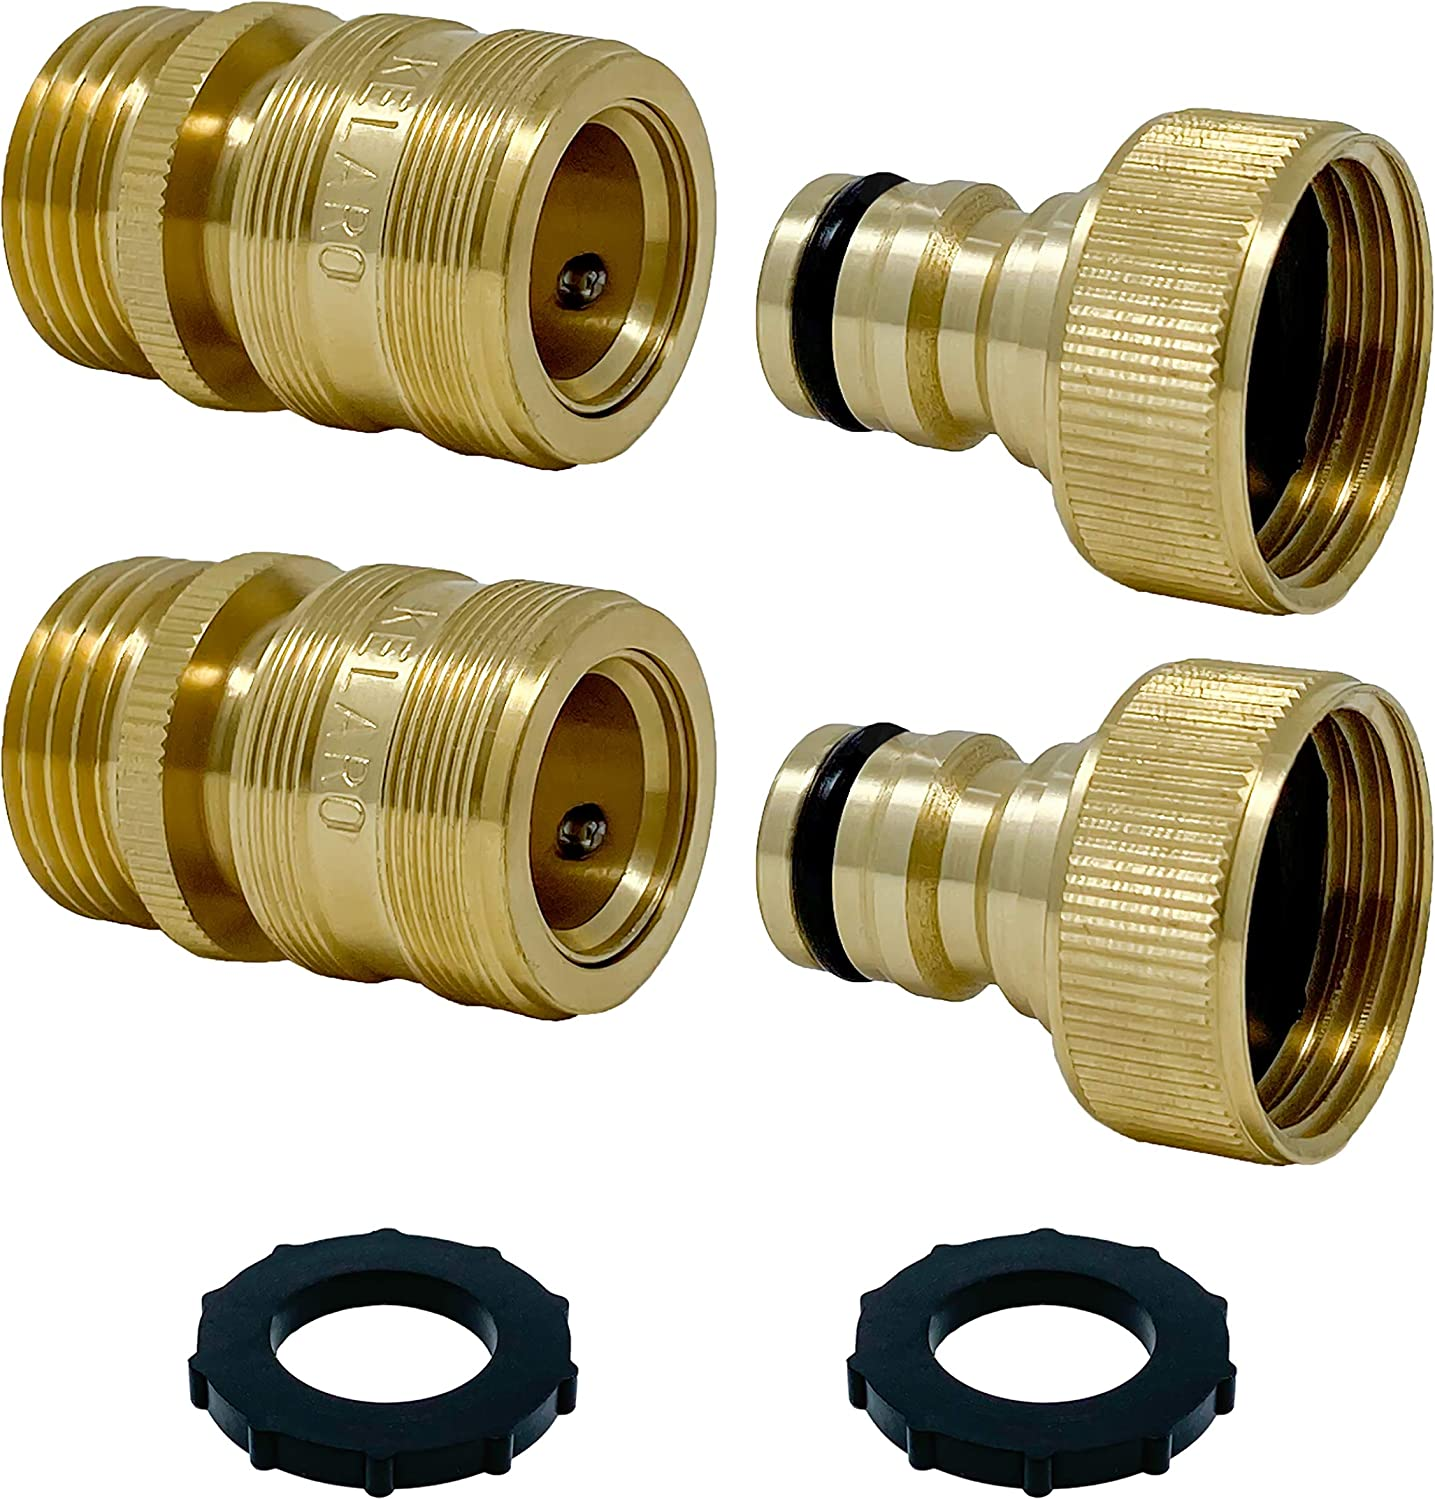 Premium Garden Hose Quick Connect Fittings (2-Pack) 3/4 Inch Solid Brass by Kelaro